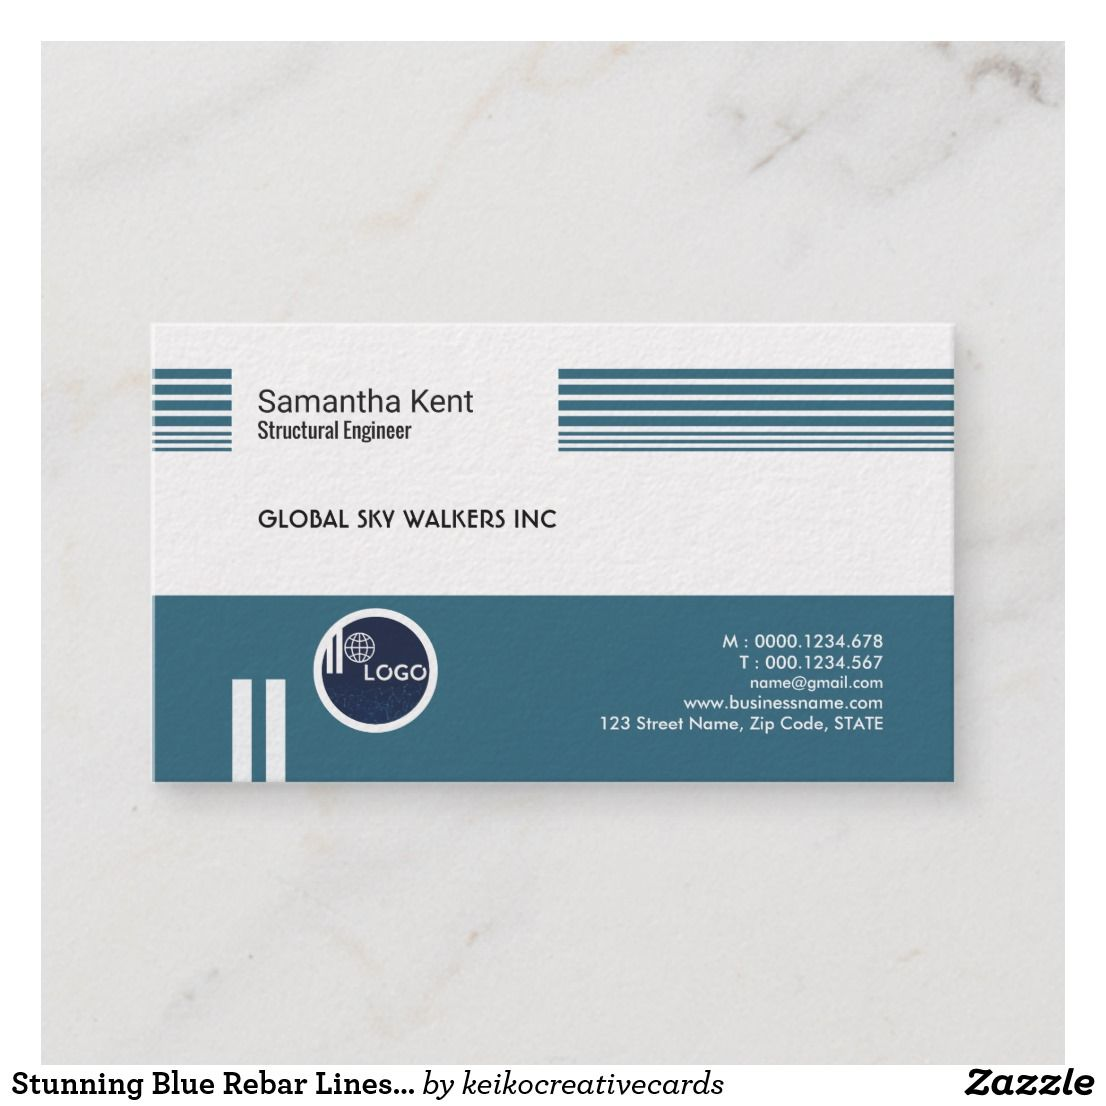 Dazzling Blue Rebar Lines Engineer Business Card Zazzle Com Card Design Cards Business Cards,Principles Of Design Pattern Images